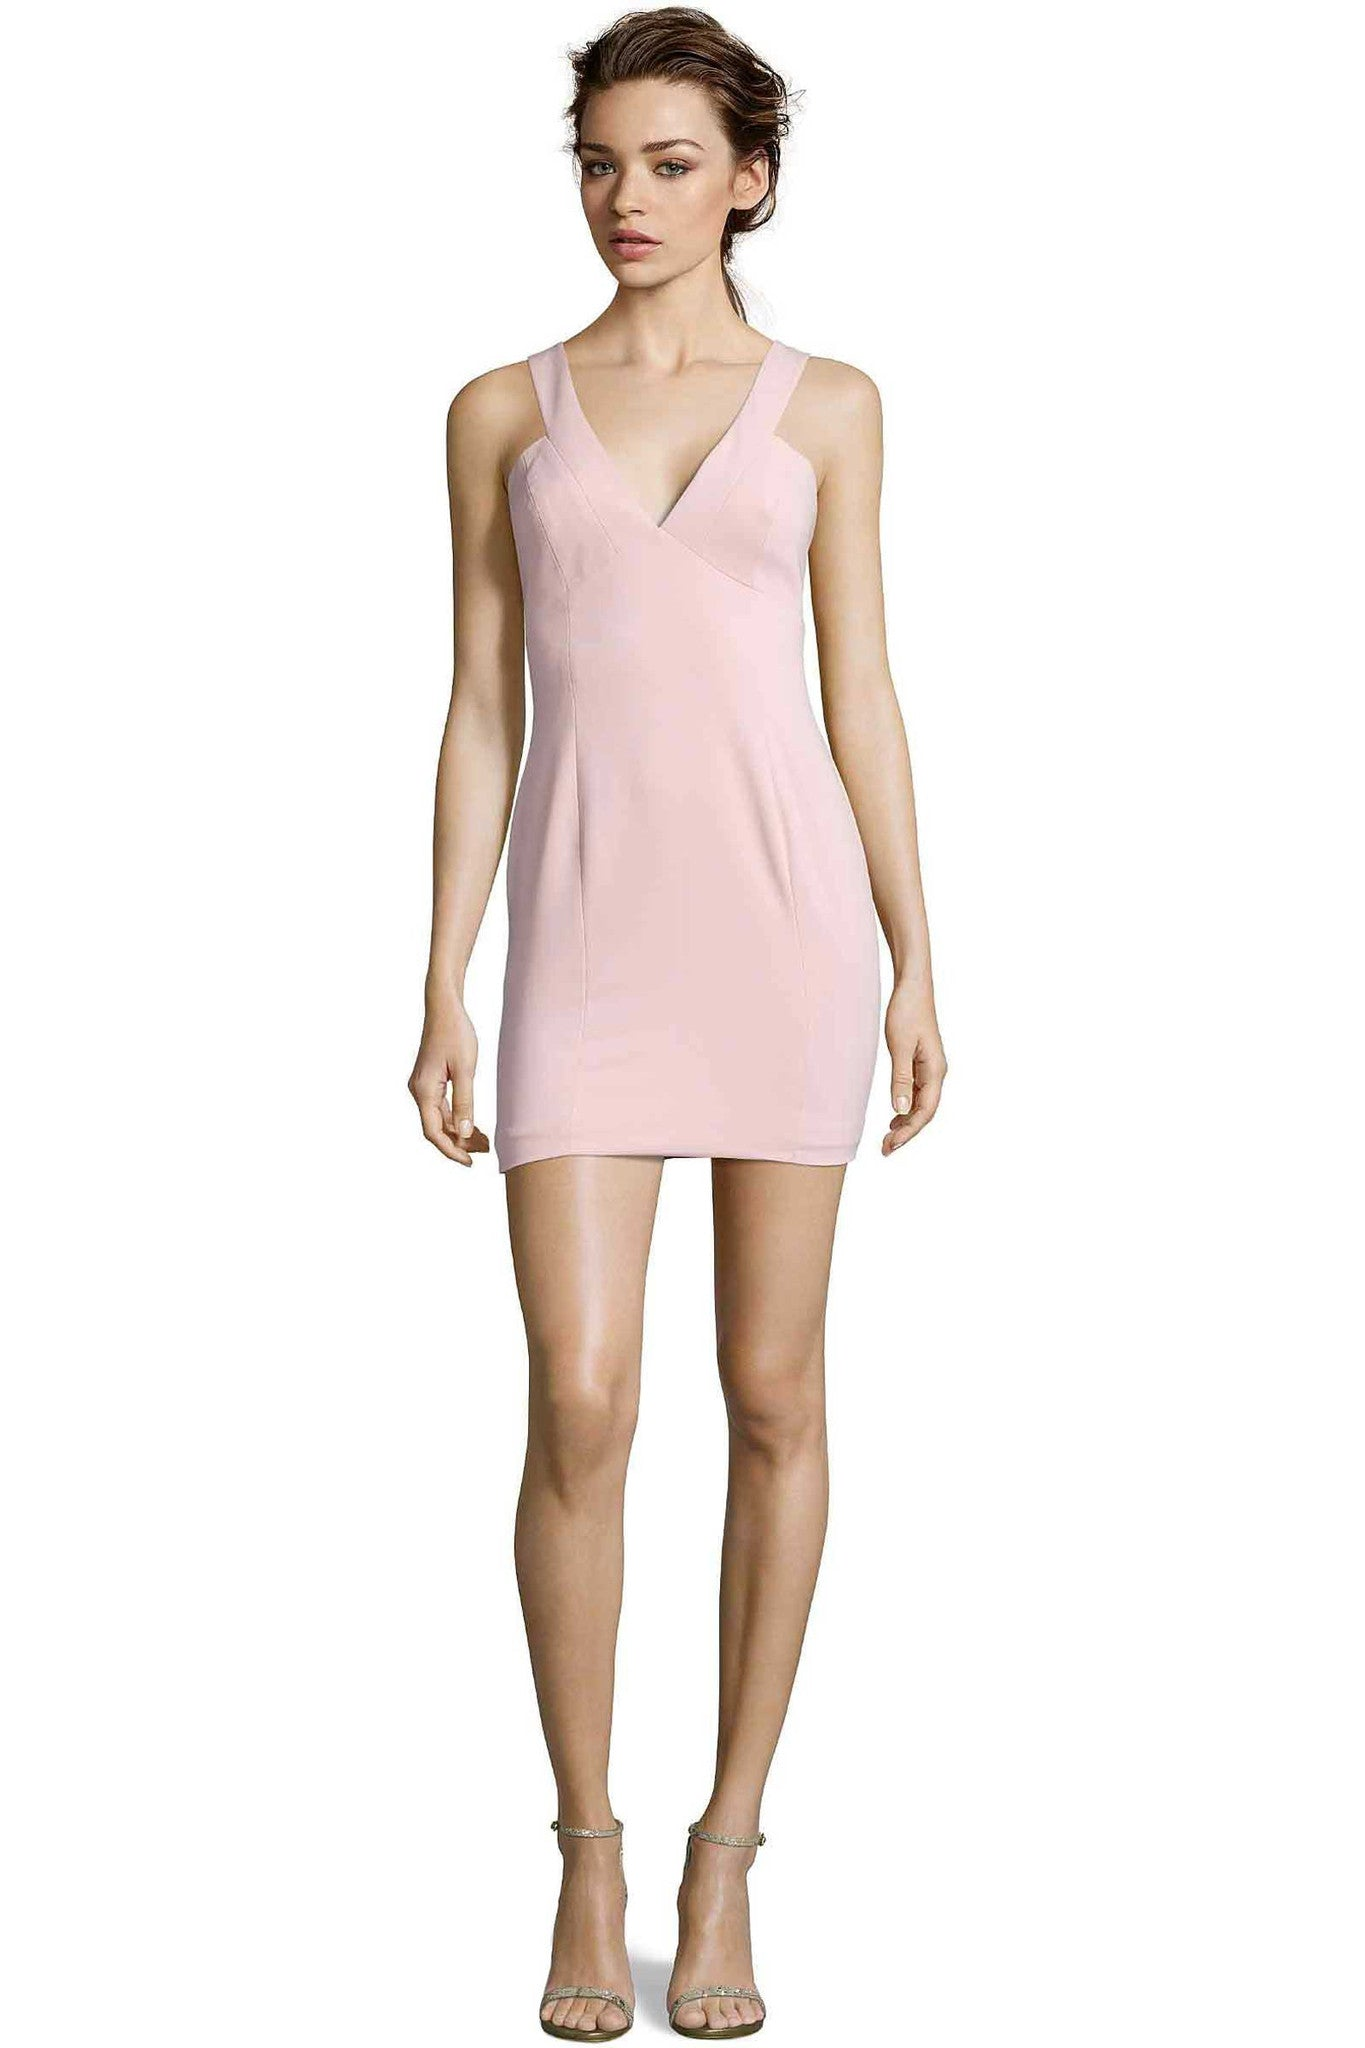 Jay Godfrey Blush Pink Mini Dress - Front View